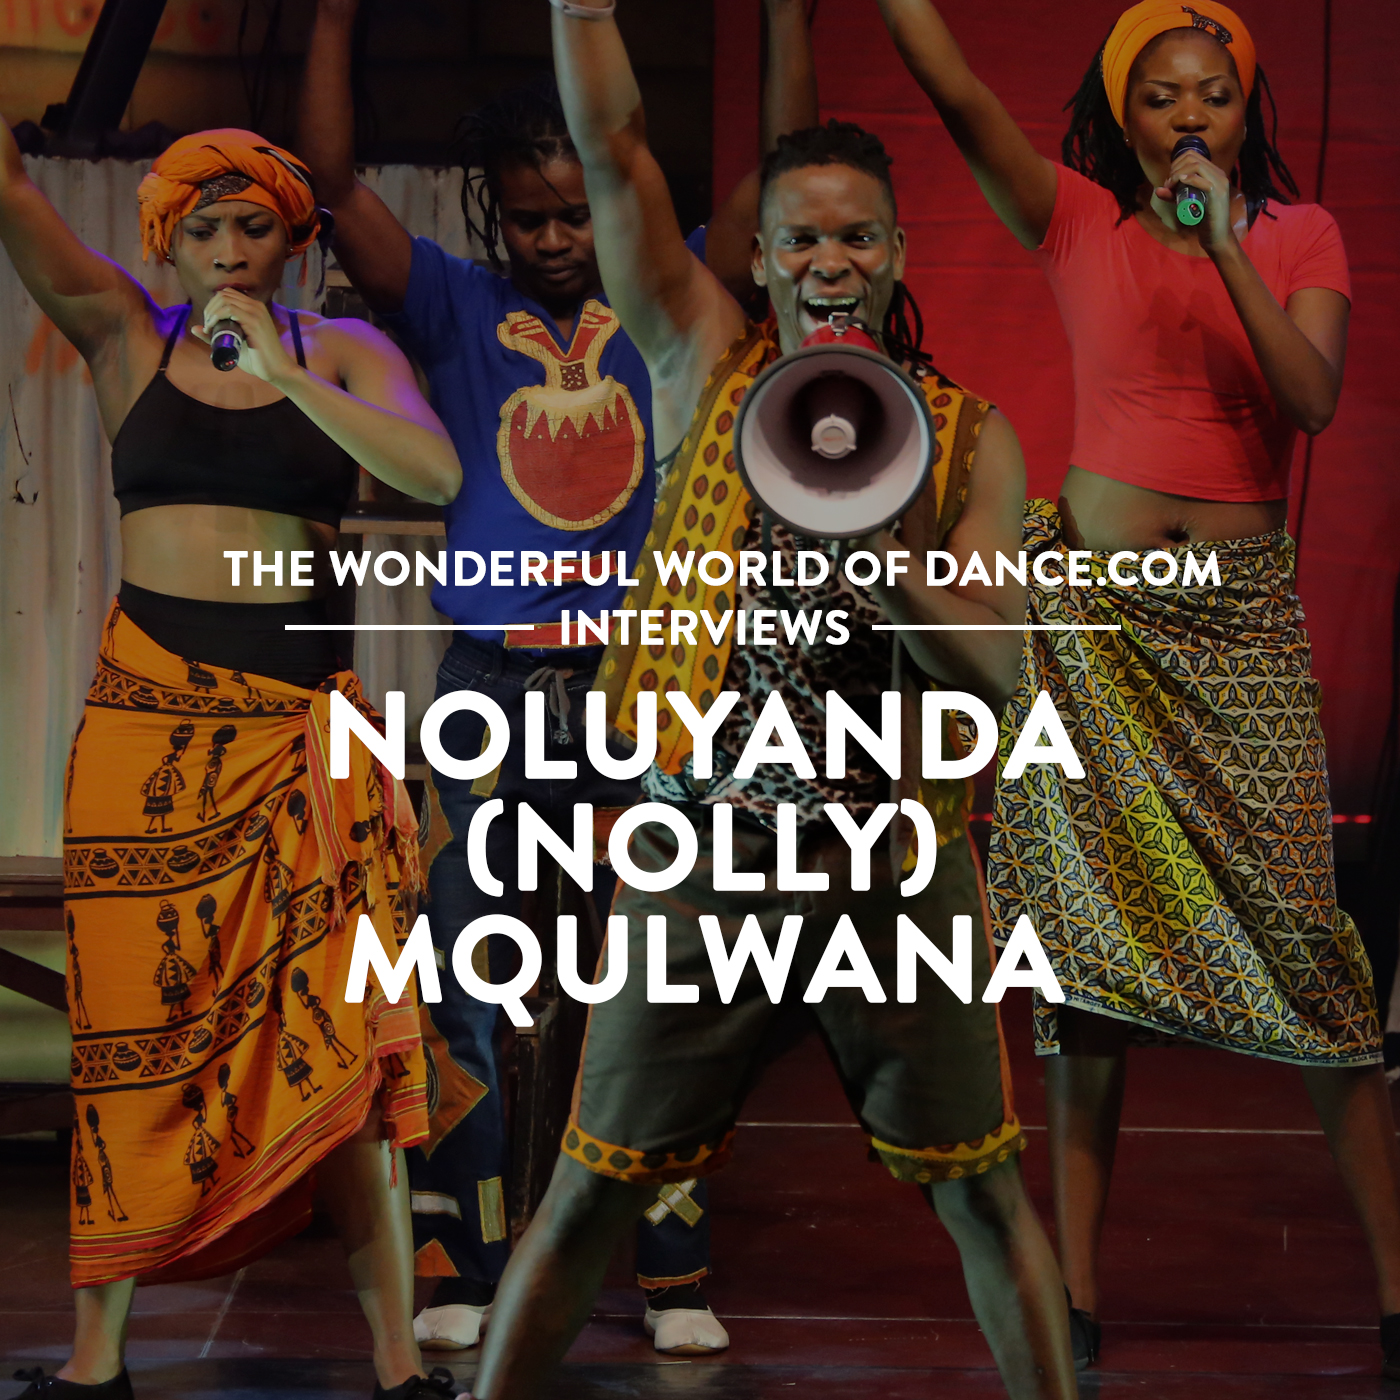 Noluyanda Mqulwana, Mother Africa